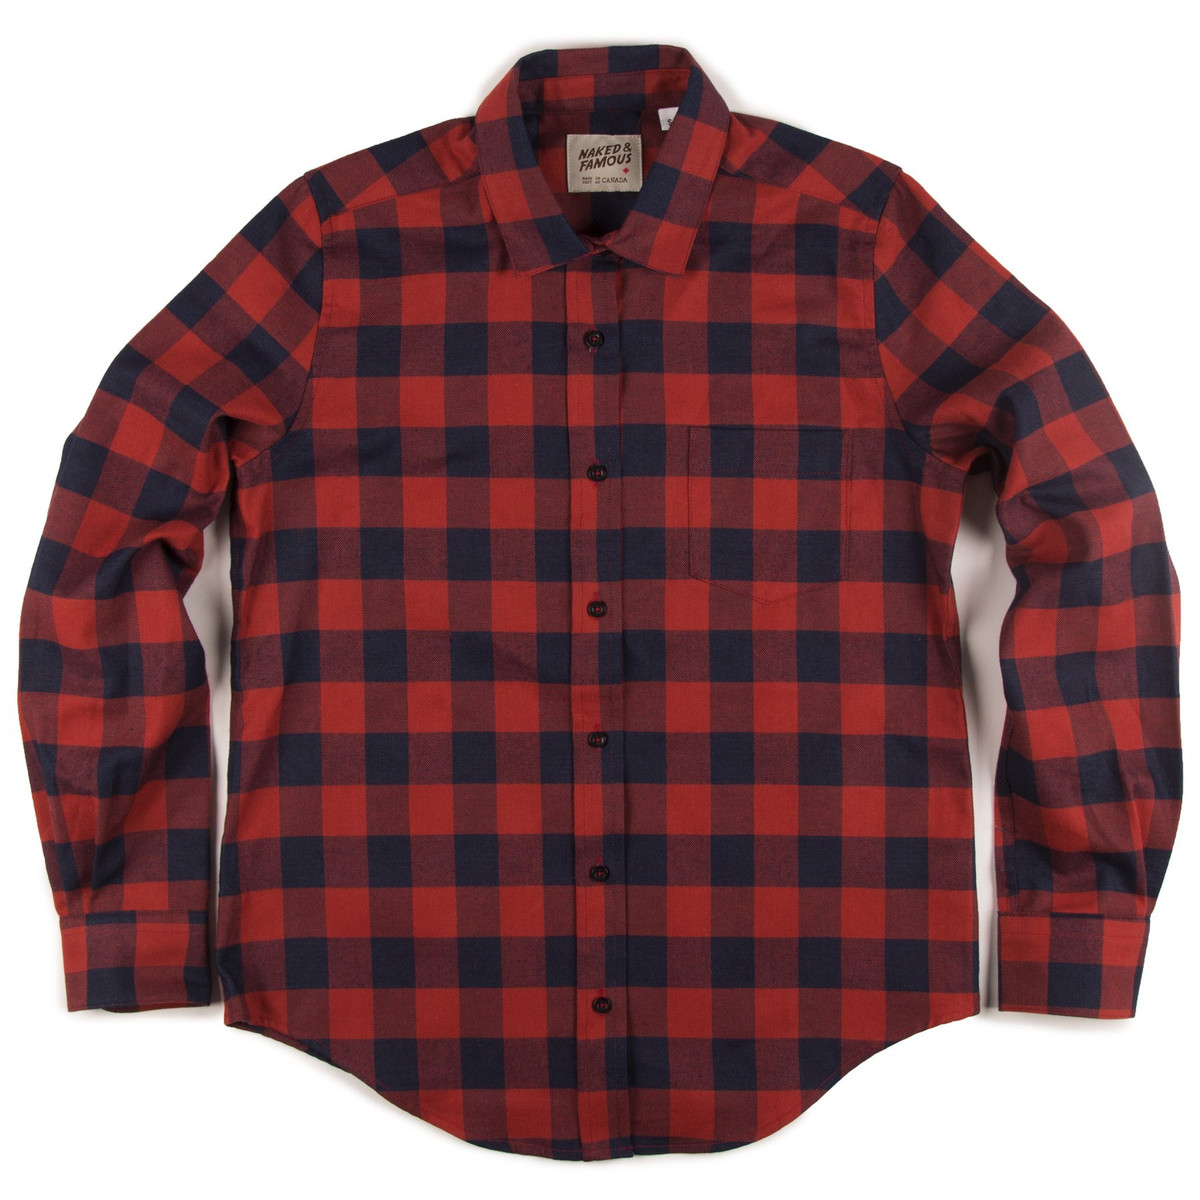 Naked Famous Boyfriend Shirt Real Indigored Plaid Garmentory